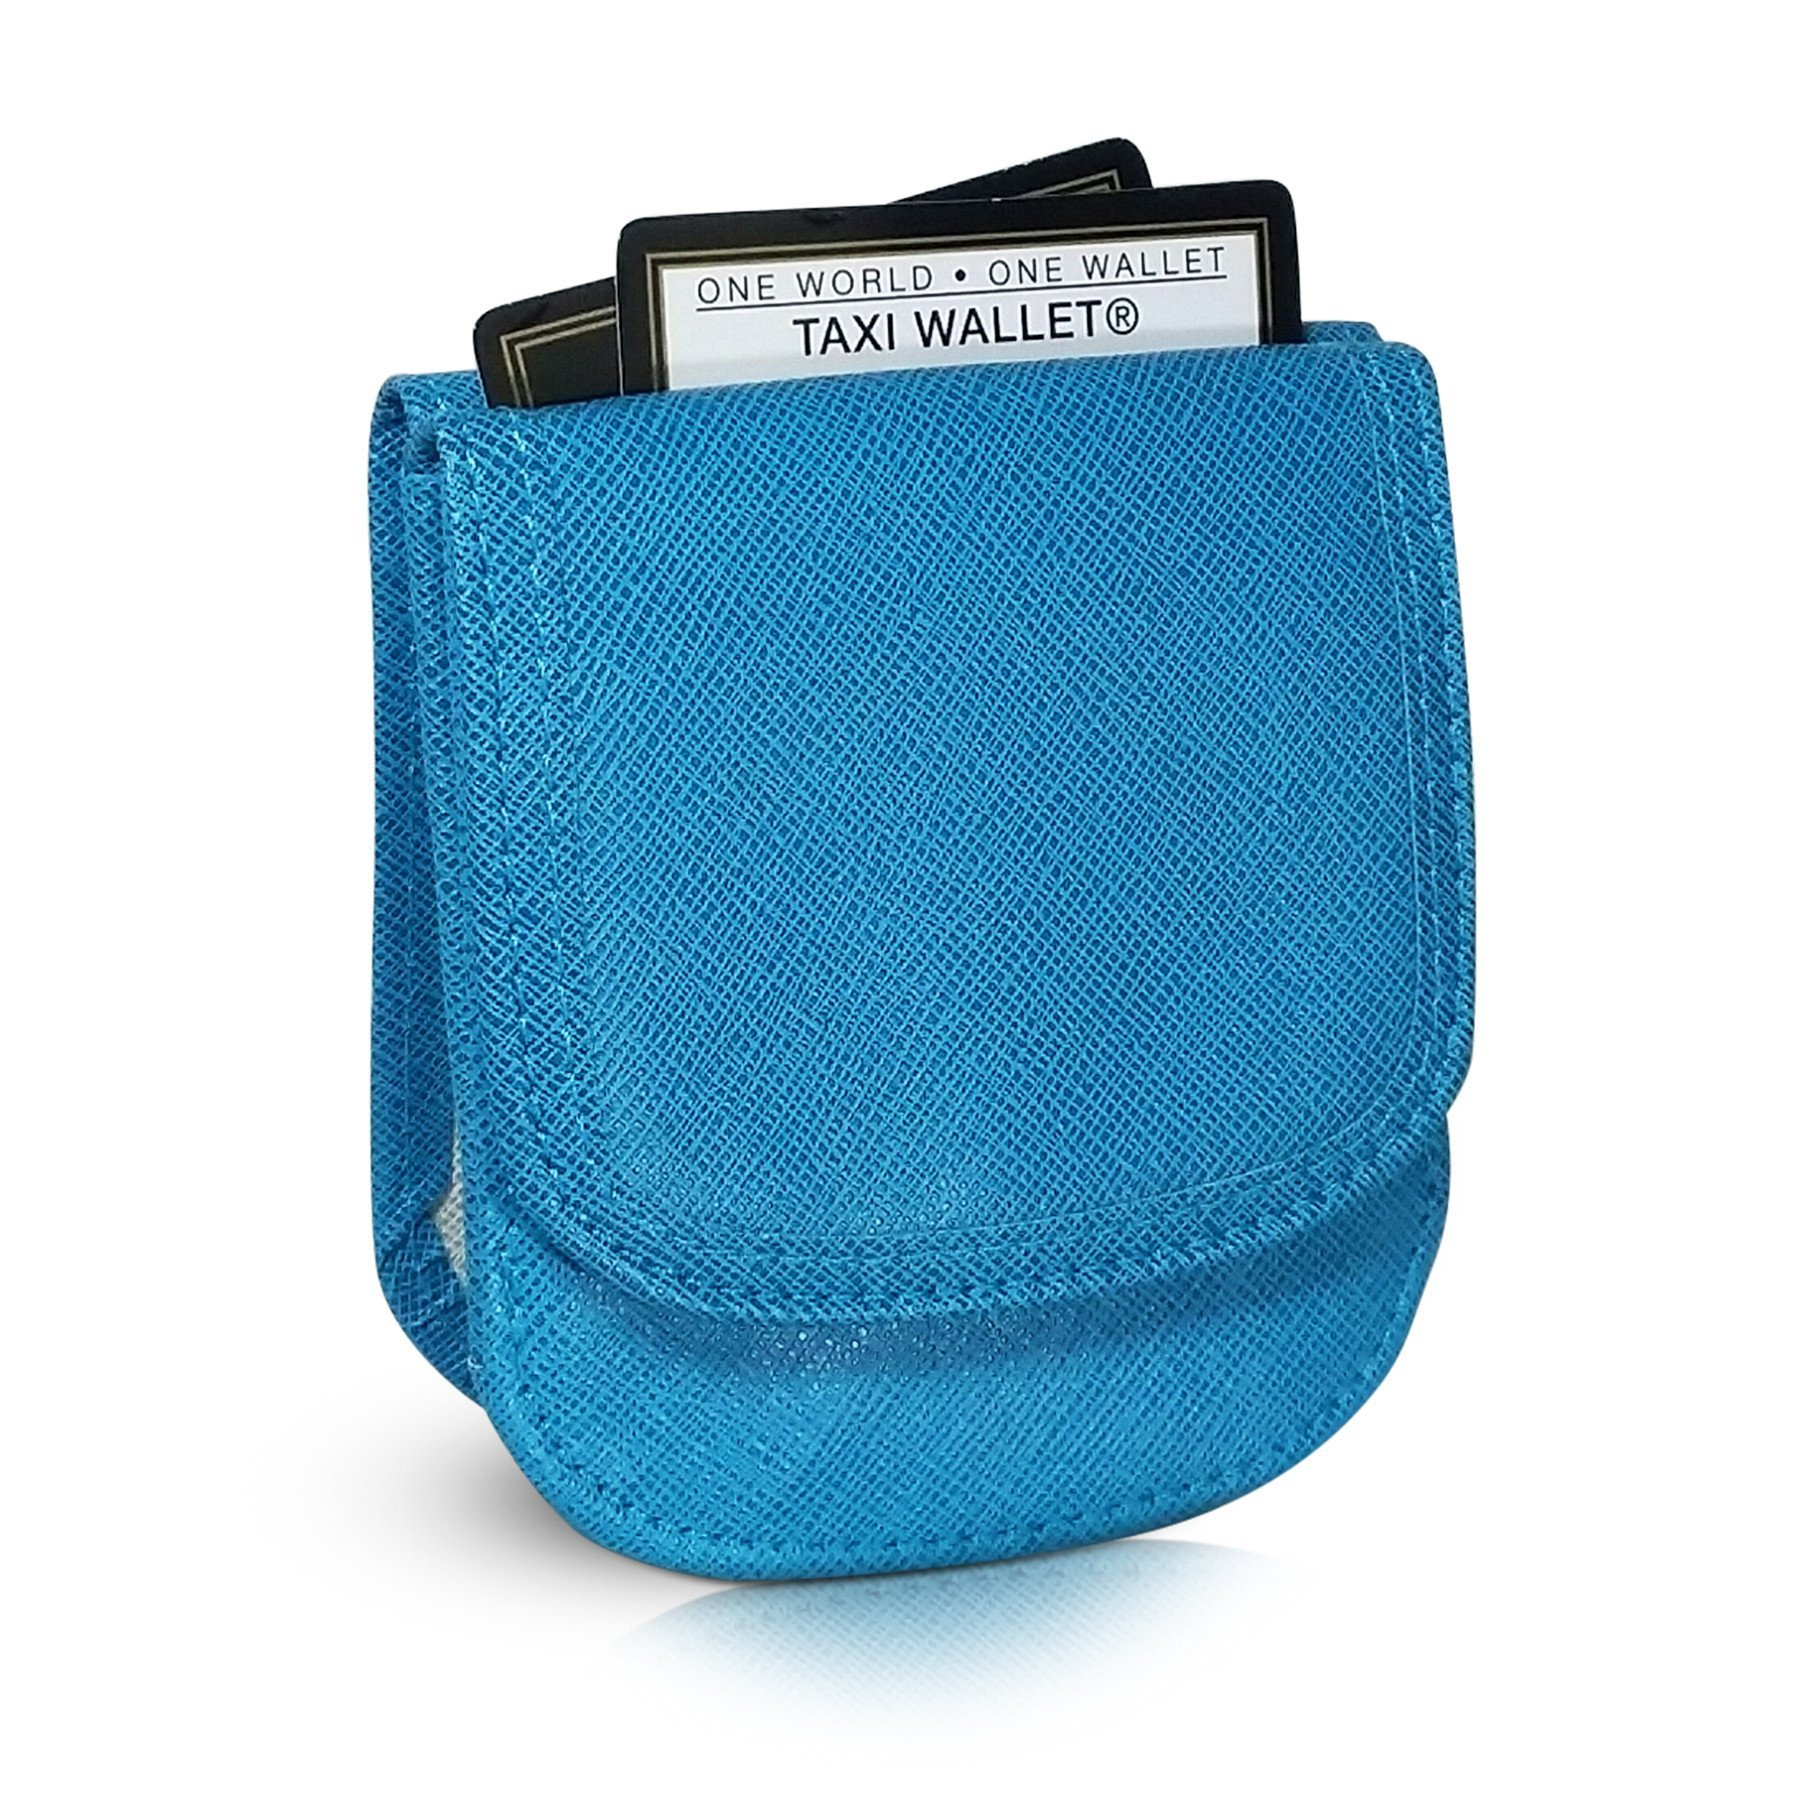 Taxi Wallet Teal Blue Small Vegan Folding Minimalist Card Wallet for Women Coin Purse